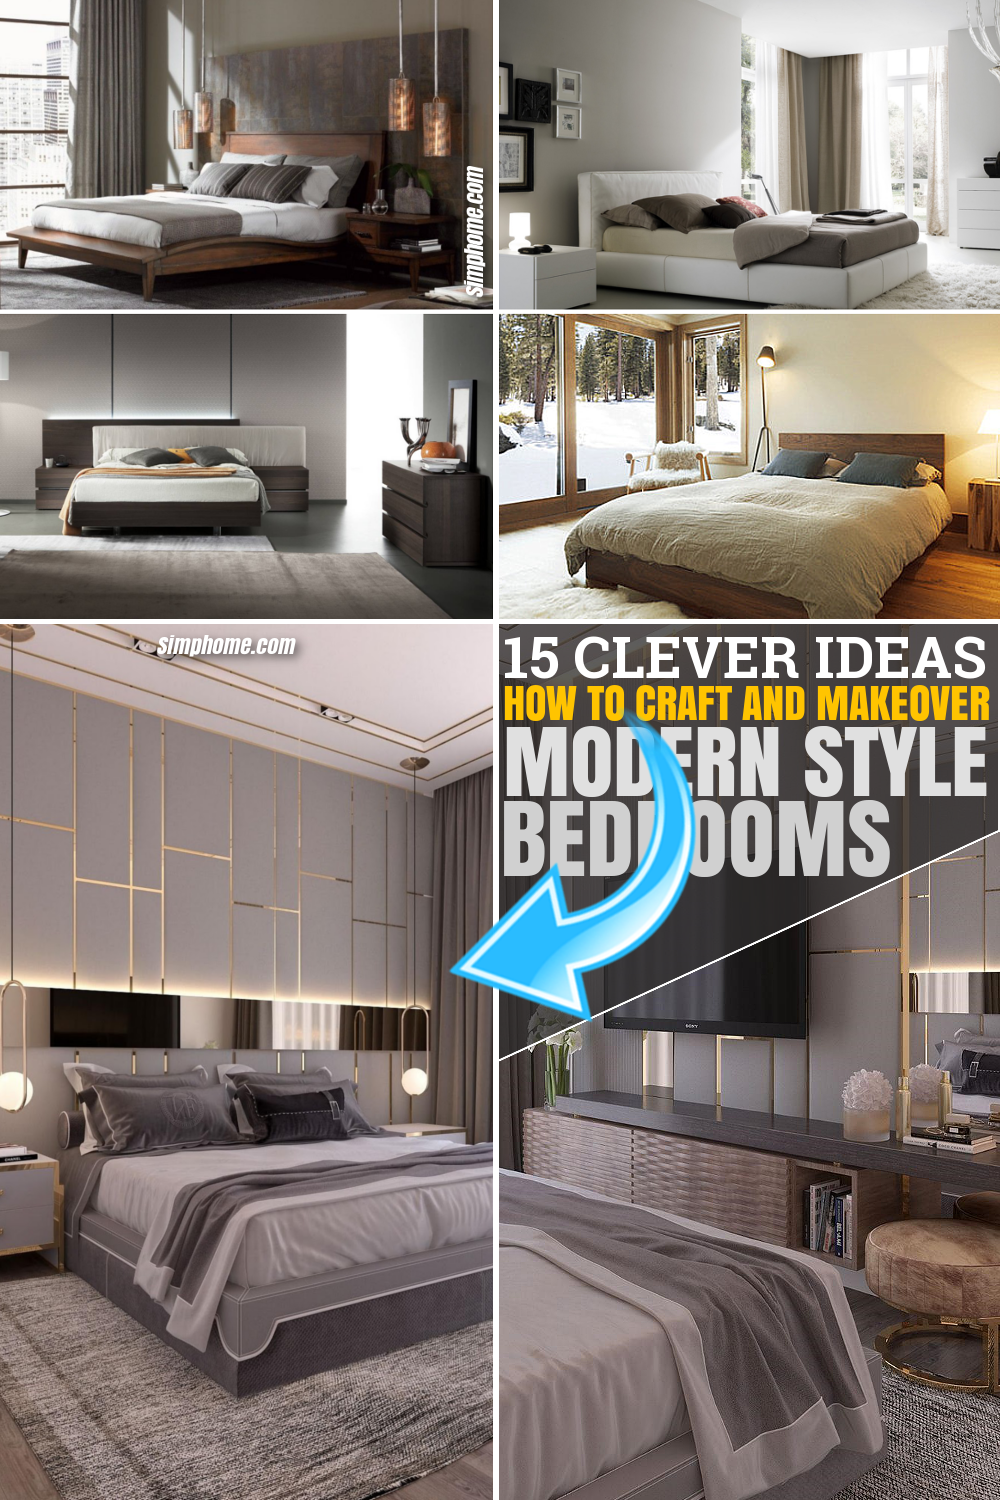 SIMPHOME.COM 10 How to Craft Modern Style Bedroom PINTEREST IMAGE